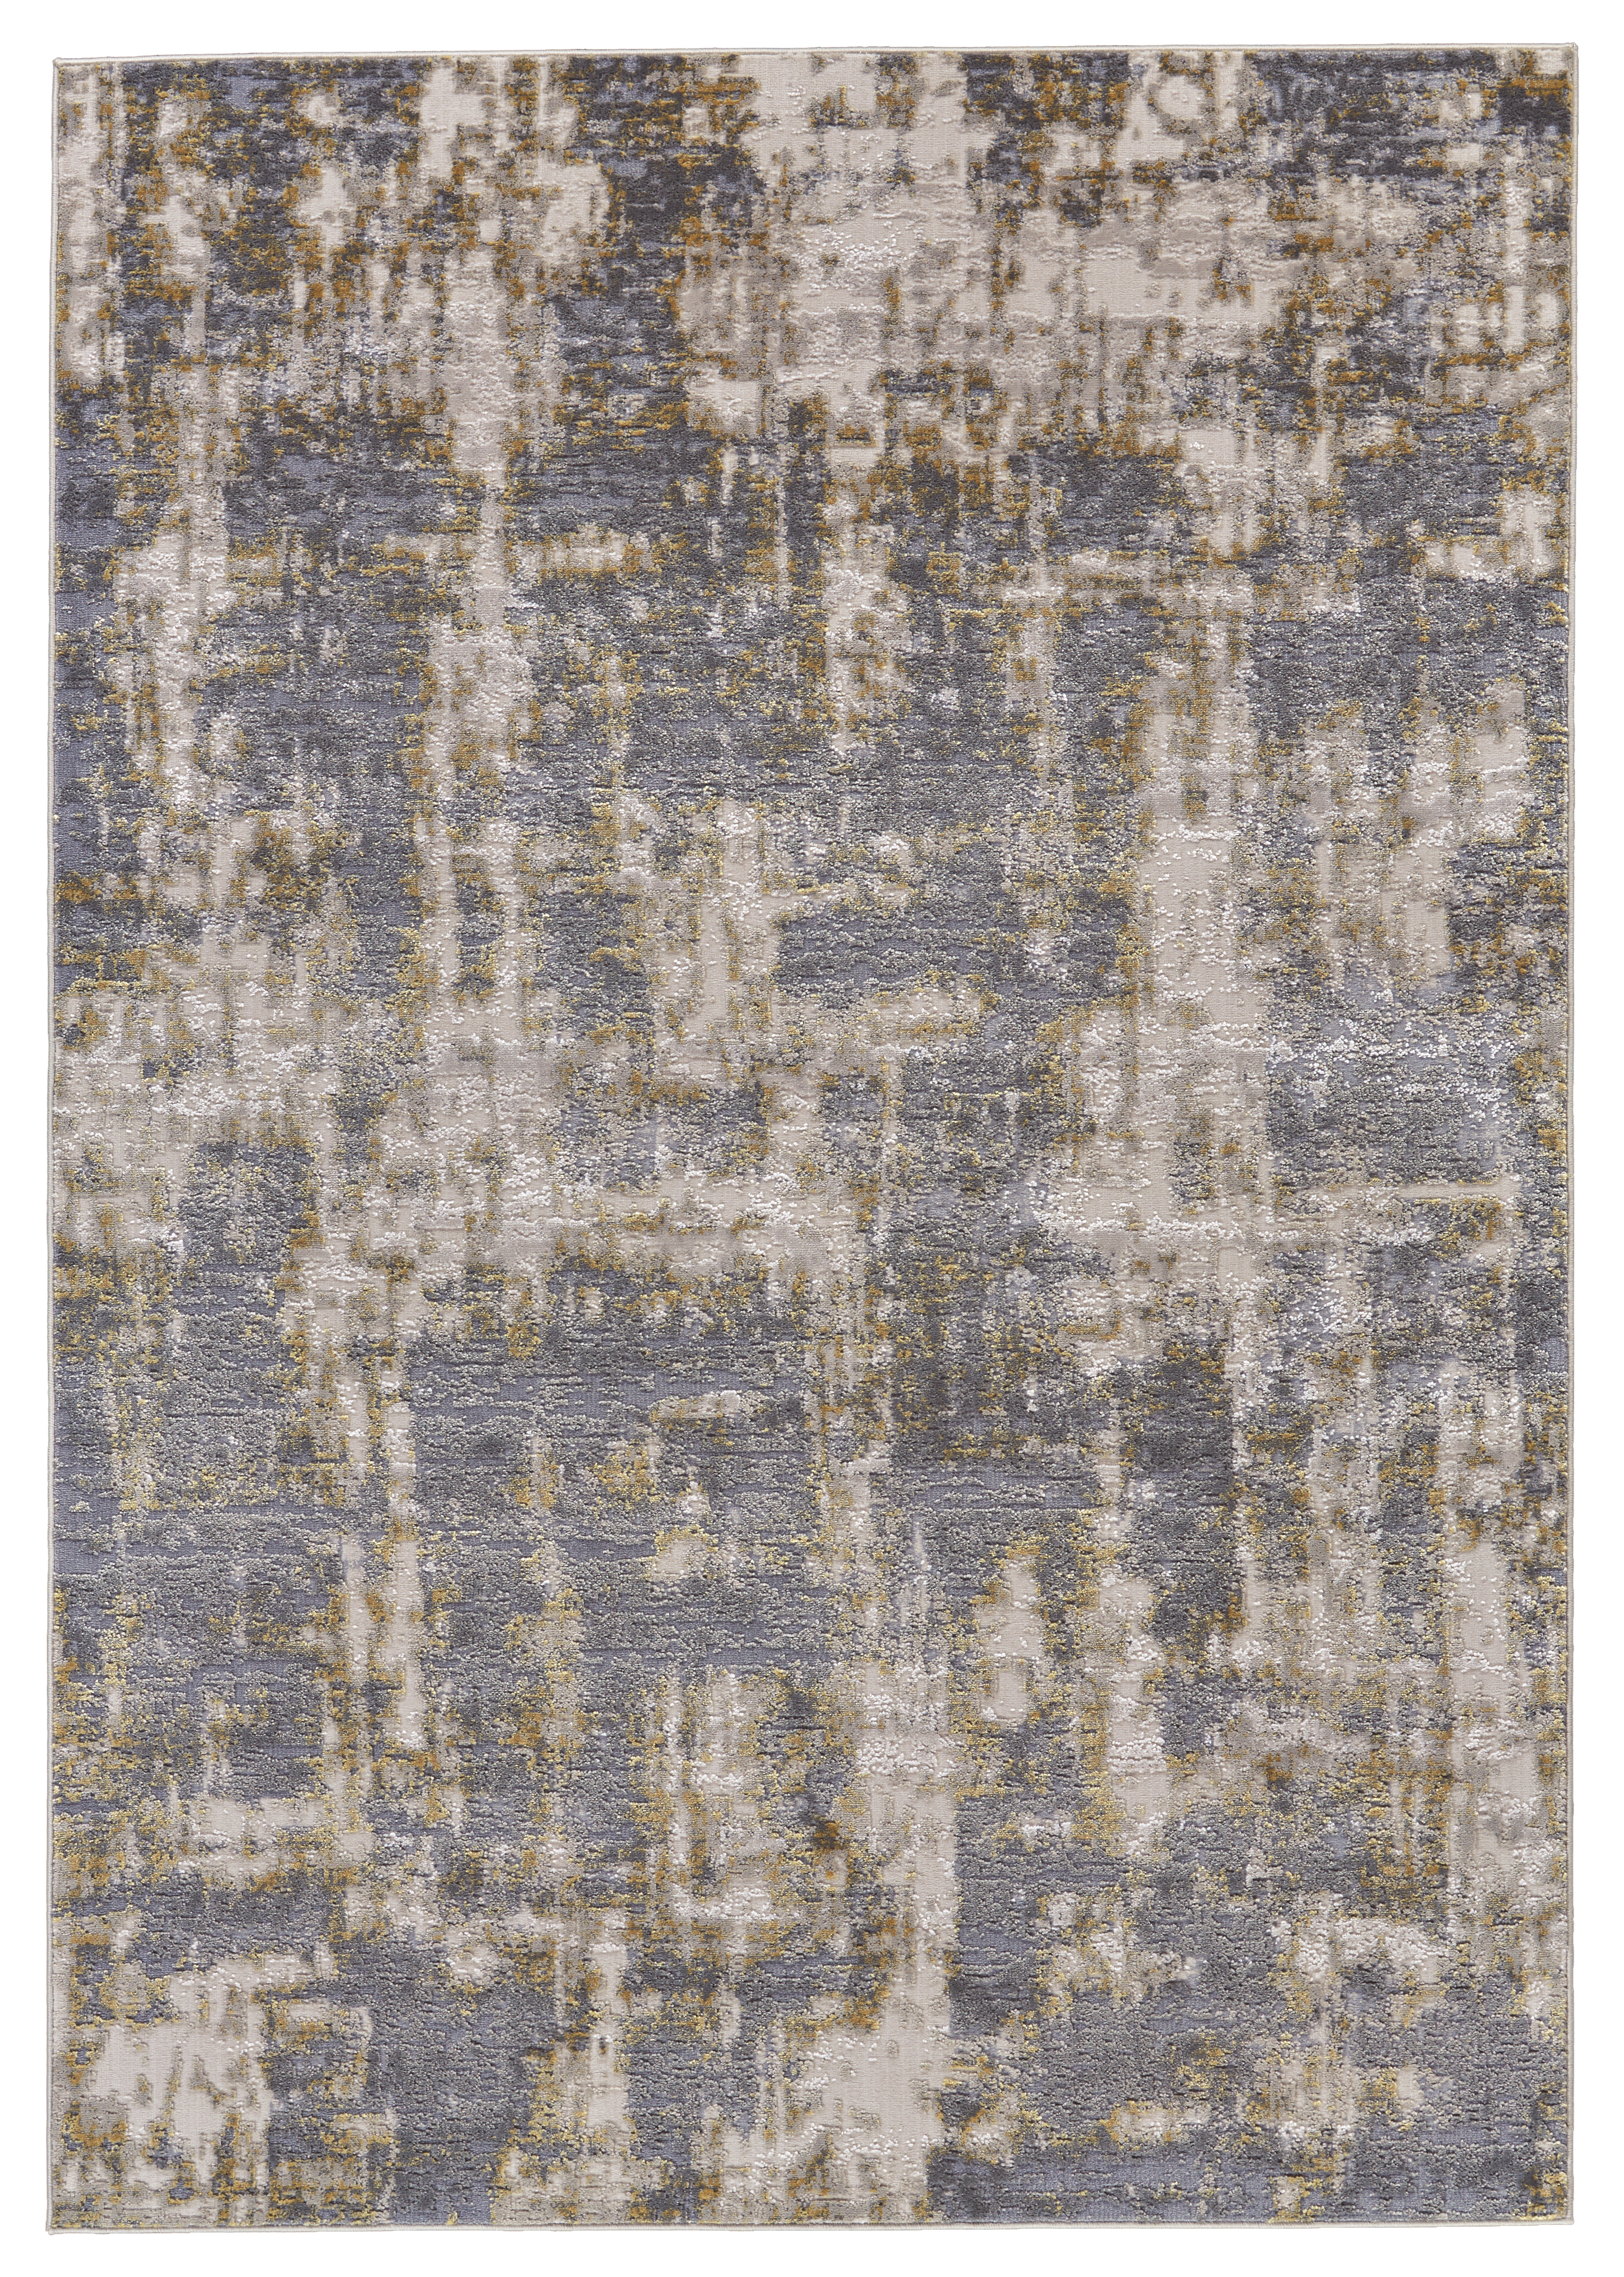 Feizy Waldor Collection rug